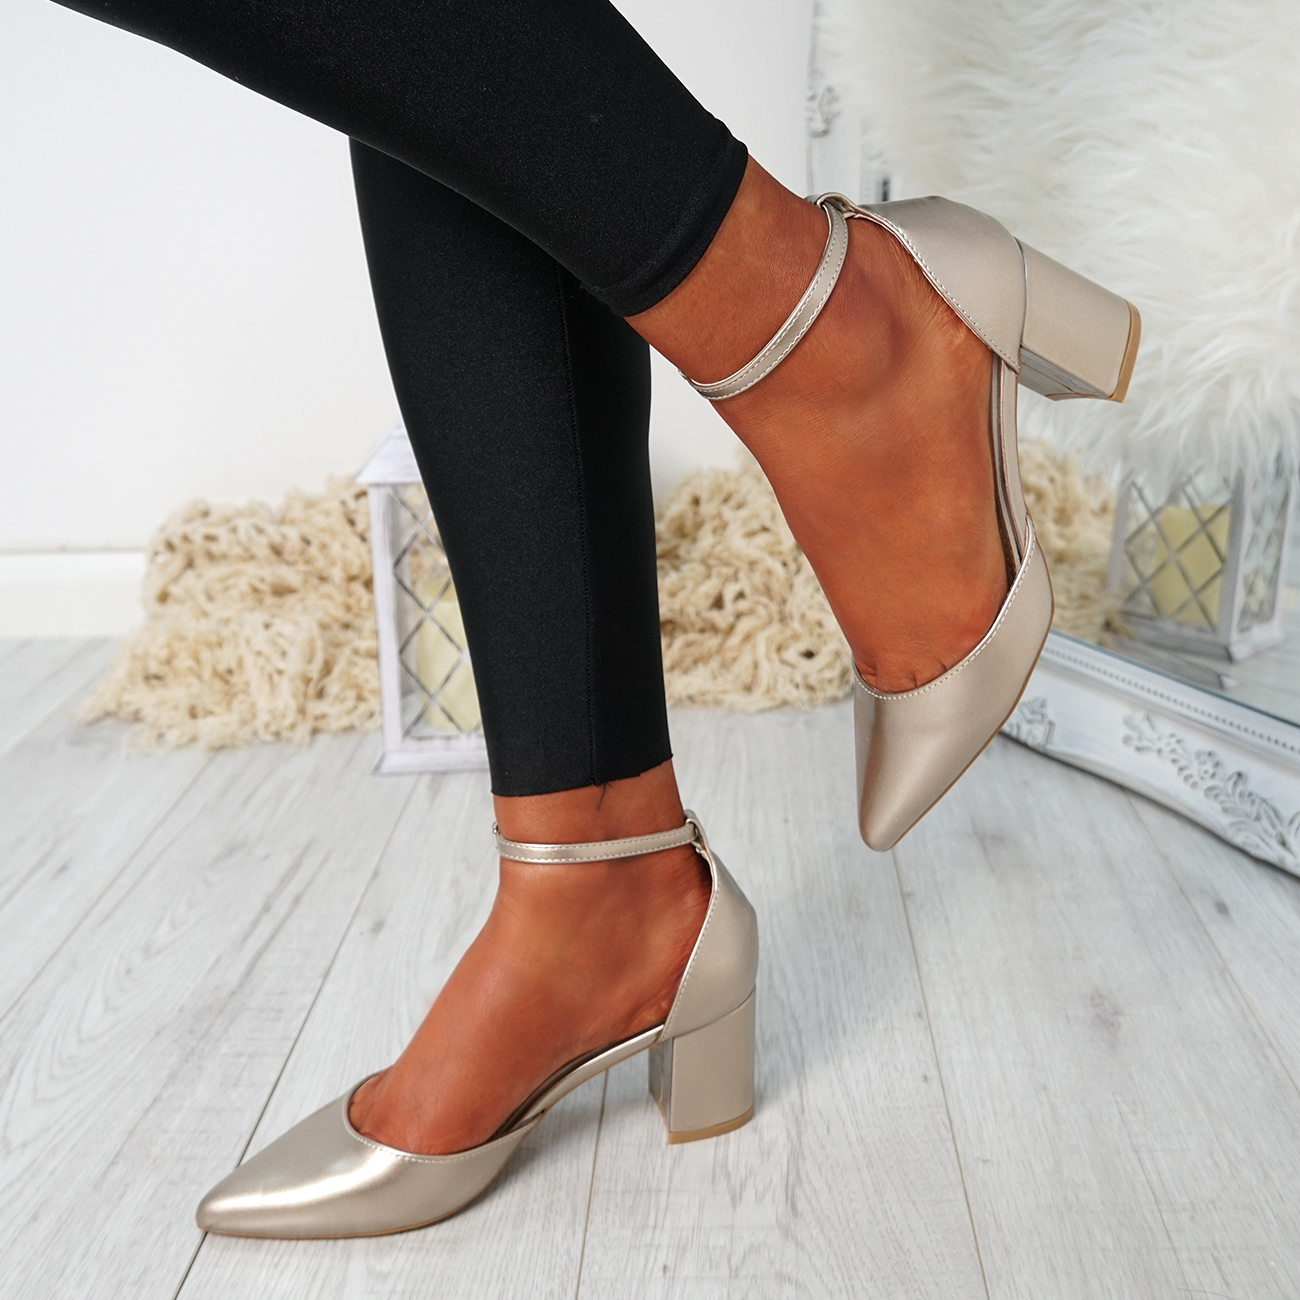 WOMENS-LADIES-ANKLE-STRAP-BLOCK-HEEL-PUMPS-POINTED-TOE-WORK-PARTY-SHOES-SIZE thumbnail 14